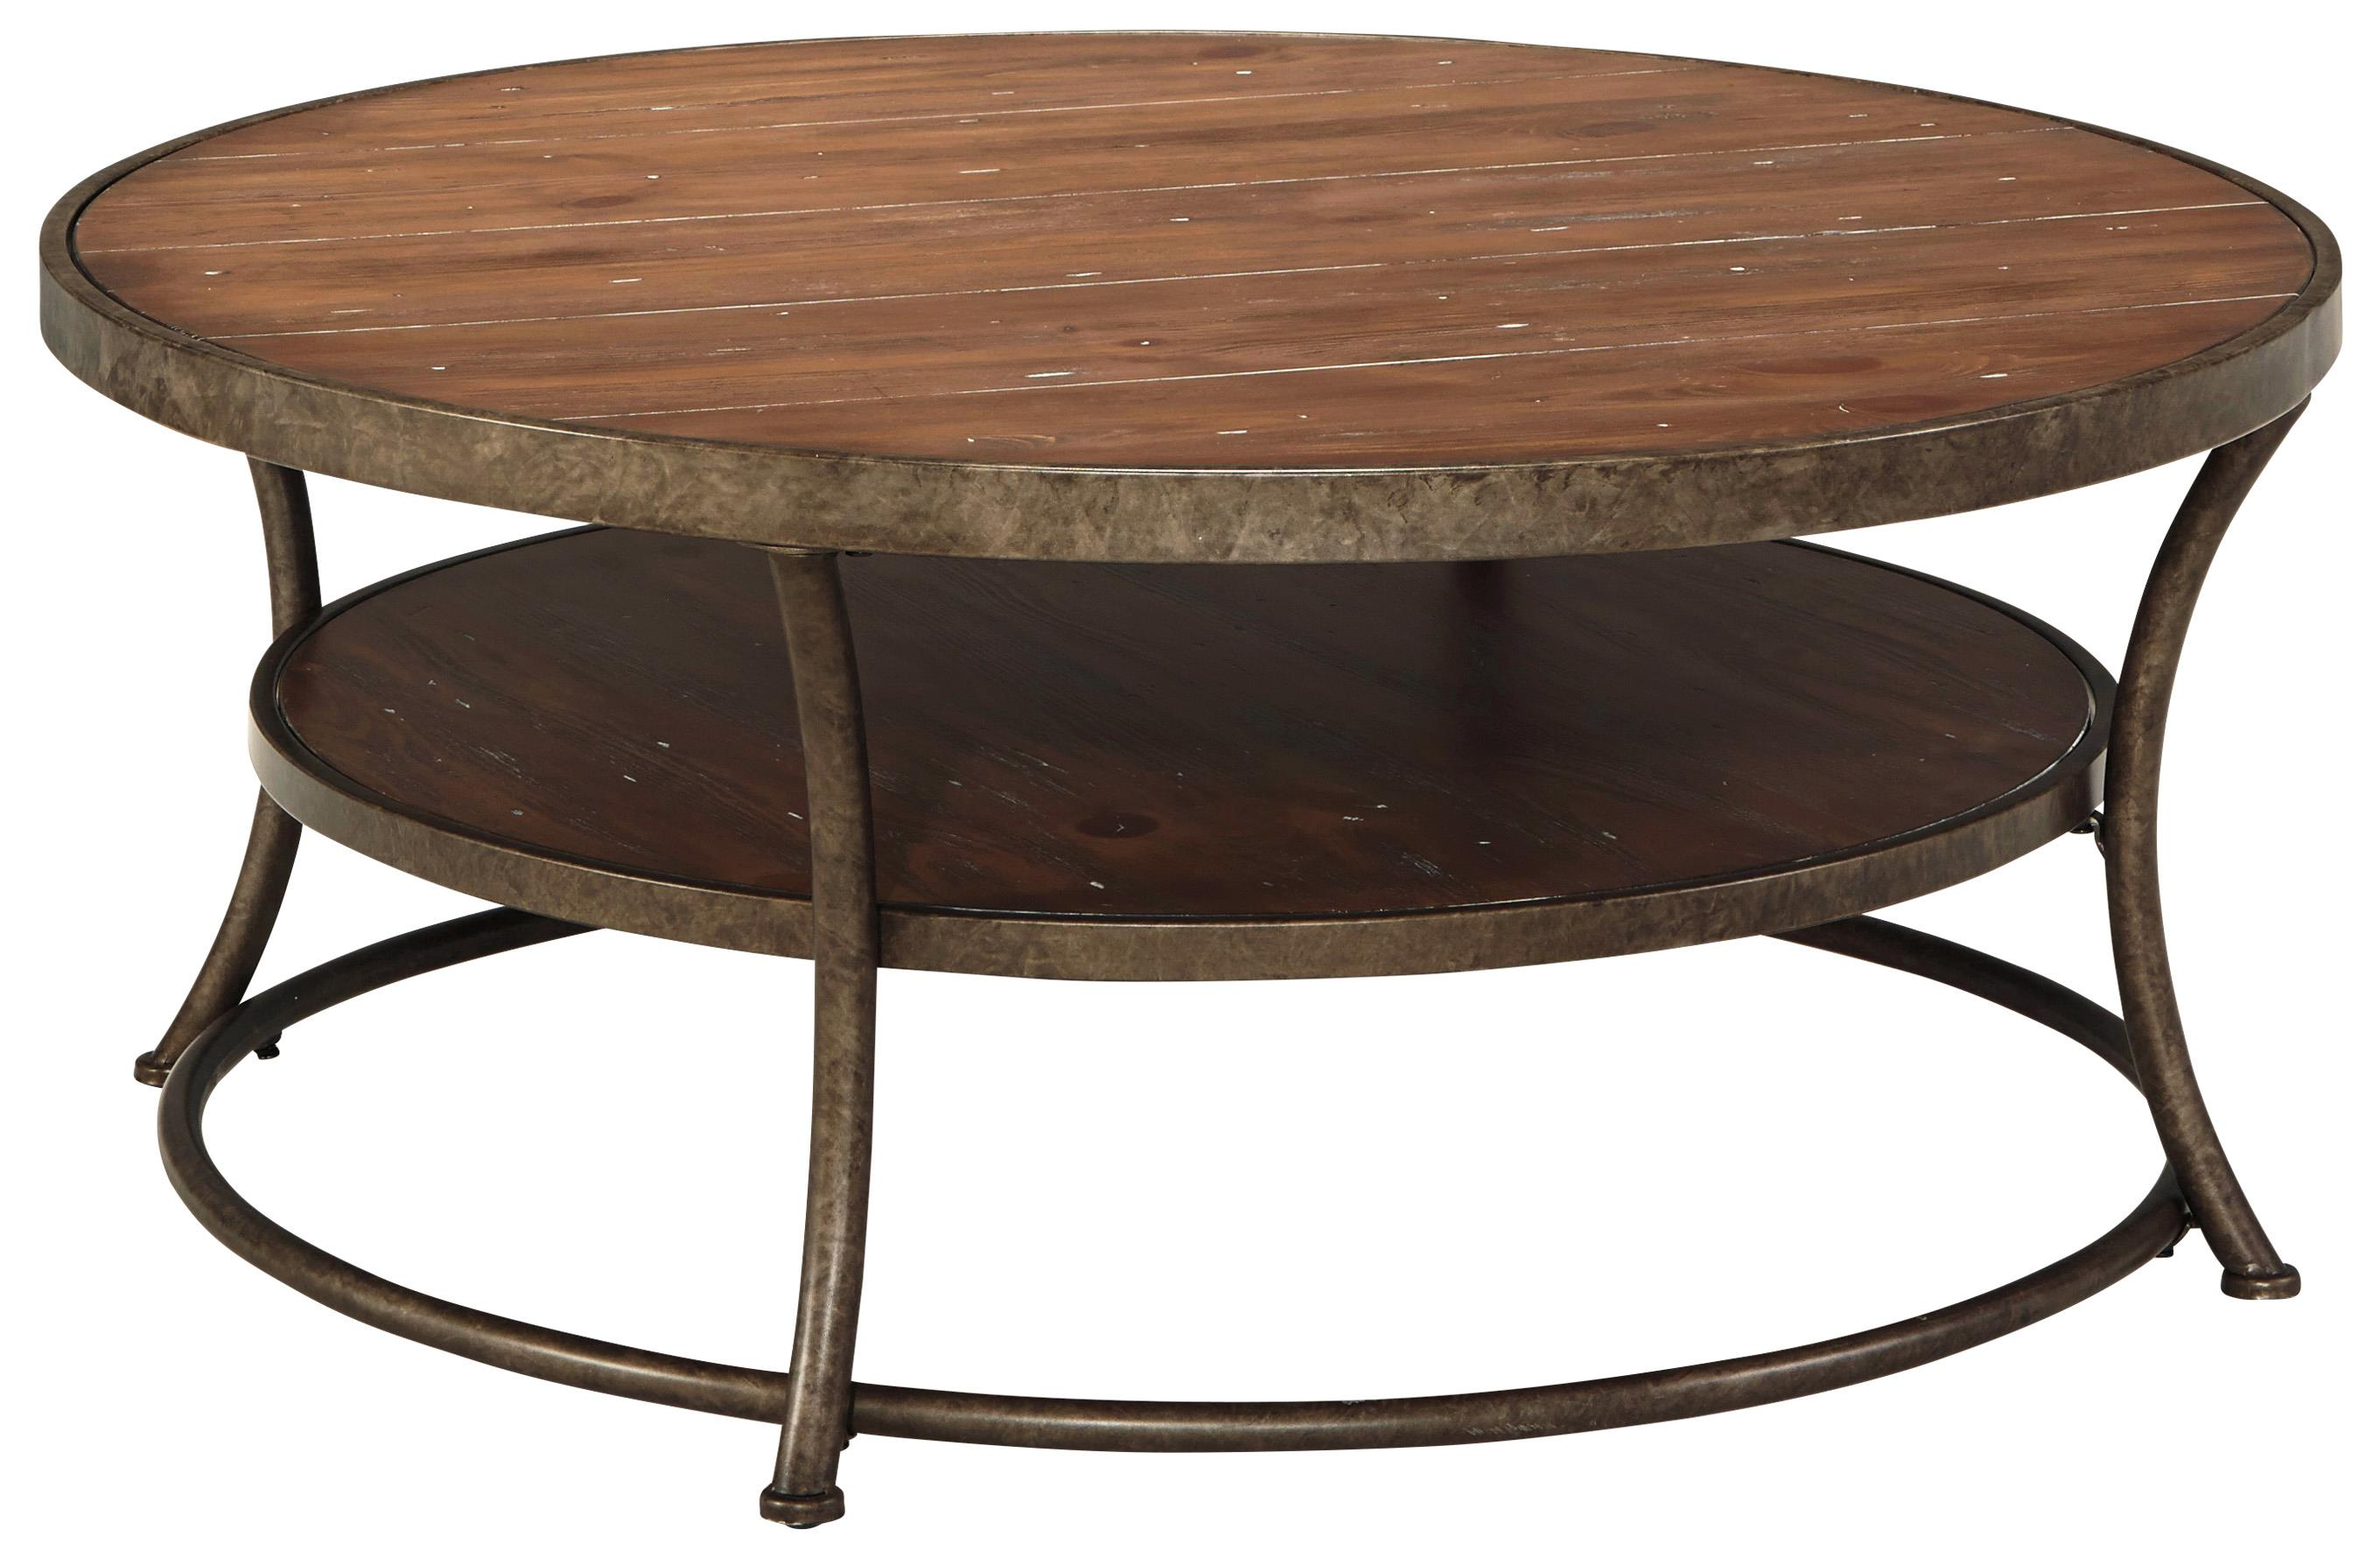 Rustic Metal Frame Round Cocktail Table With Distressed Pine Top Amp Shelf By Signature Design By